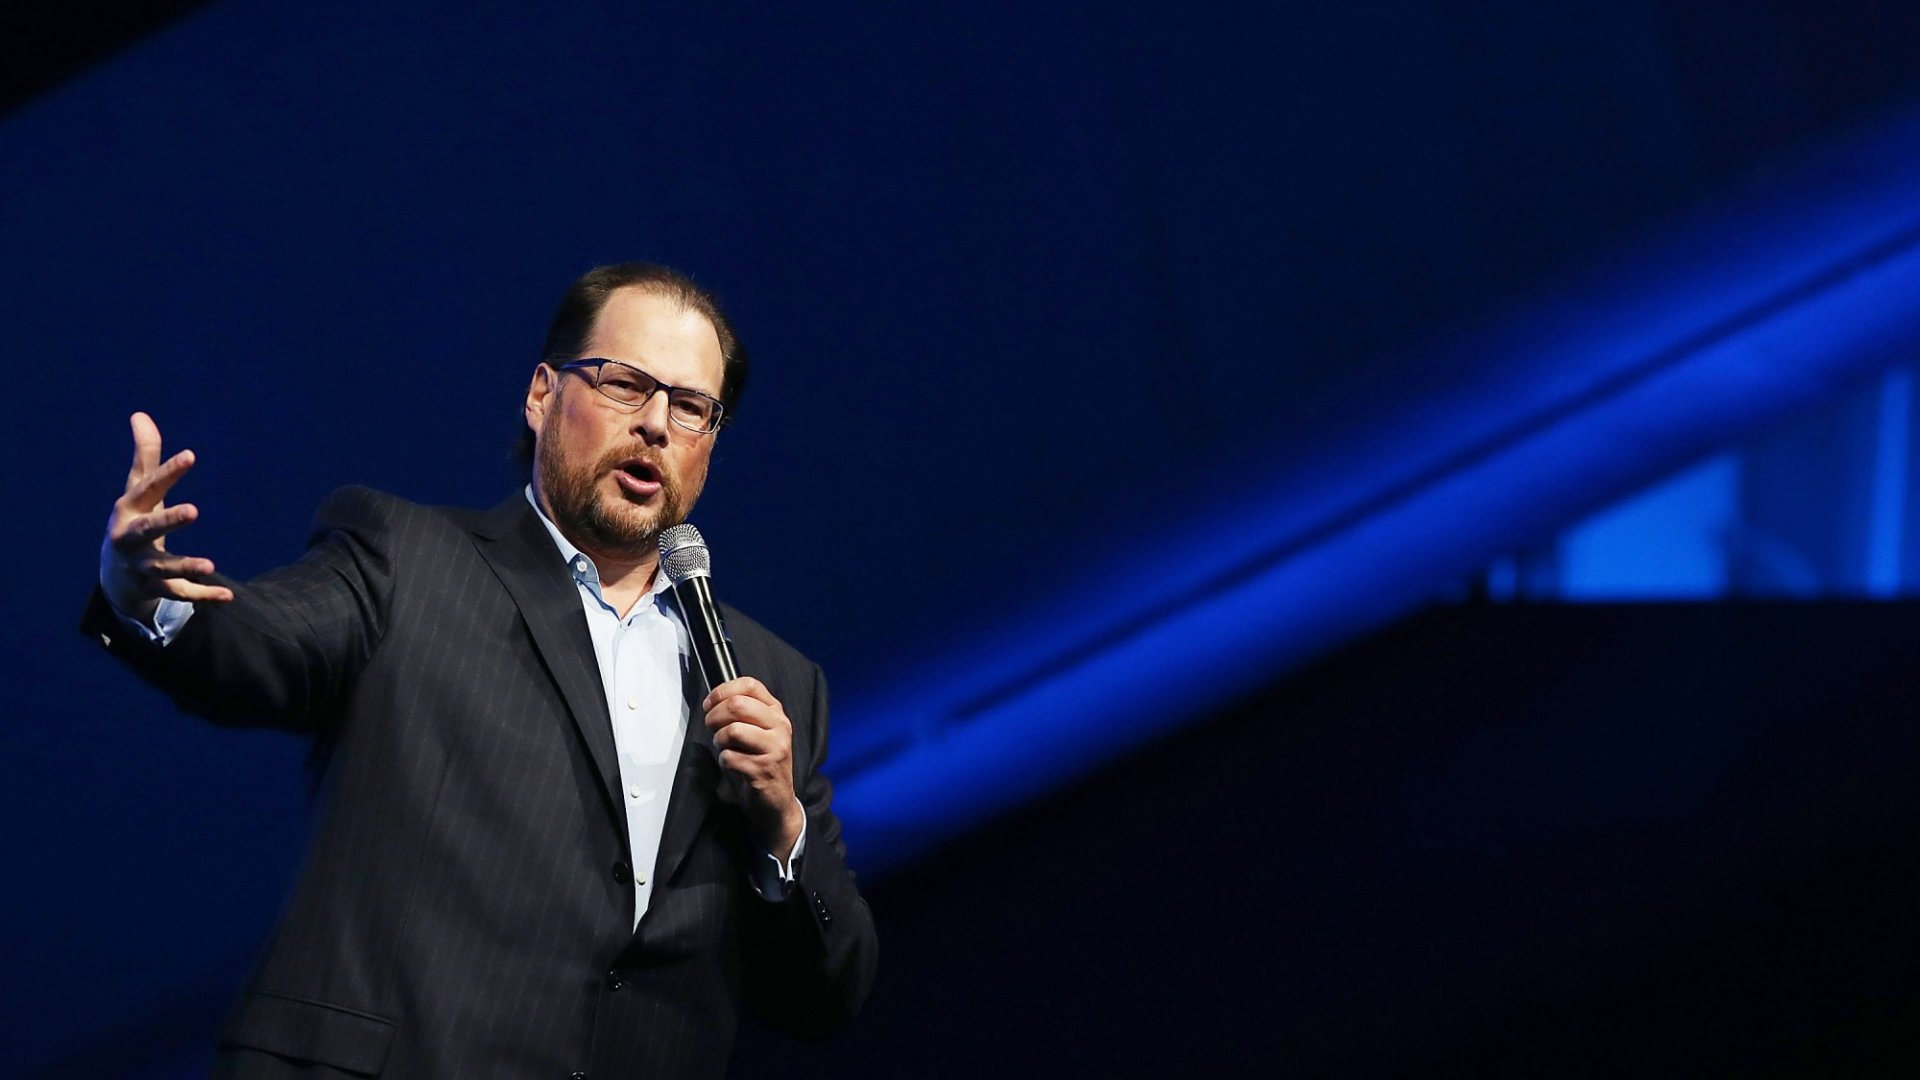 Salesforce CEO Marc Benioff on Equality at Work: 'I Have to Represent Everyone'